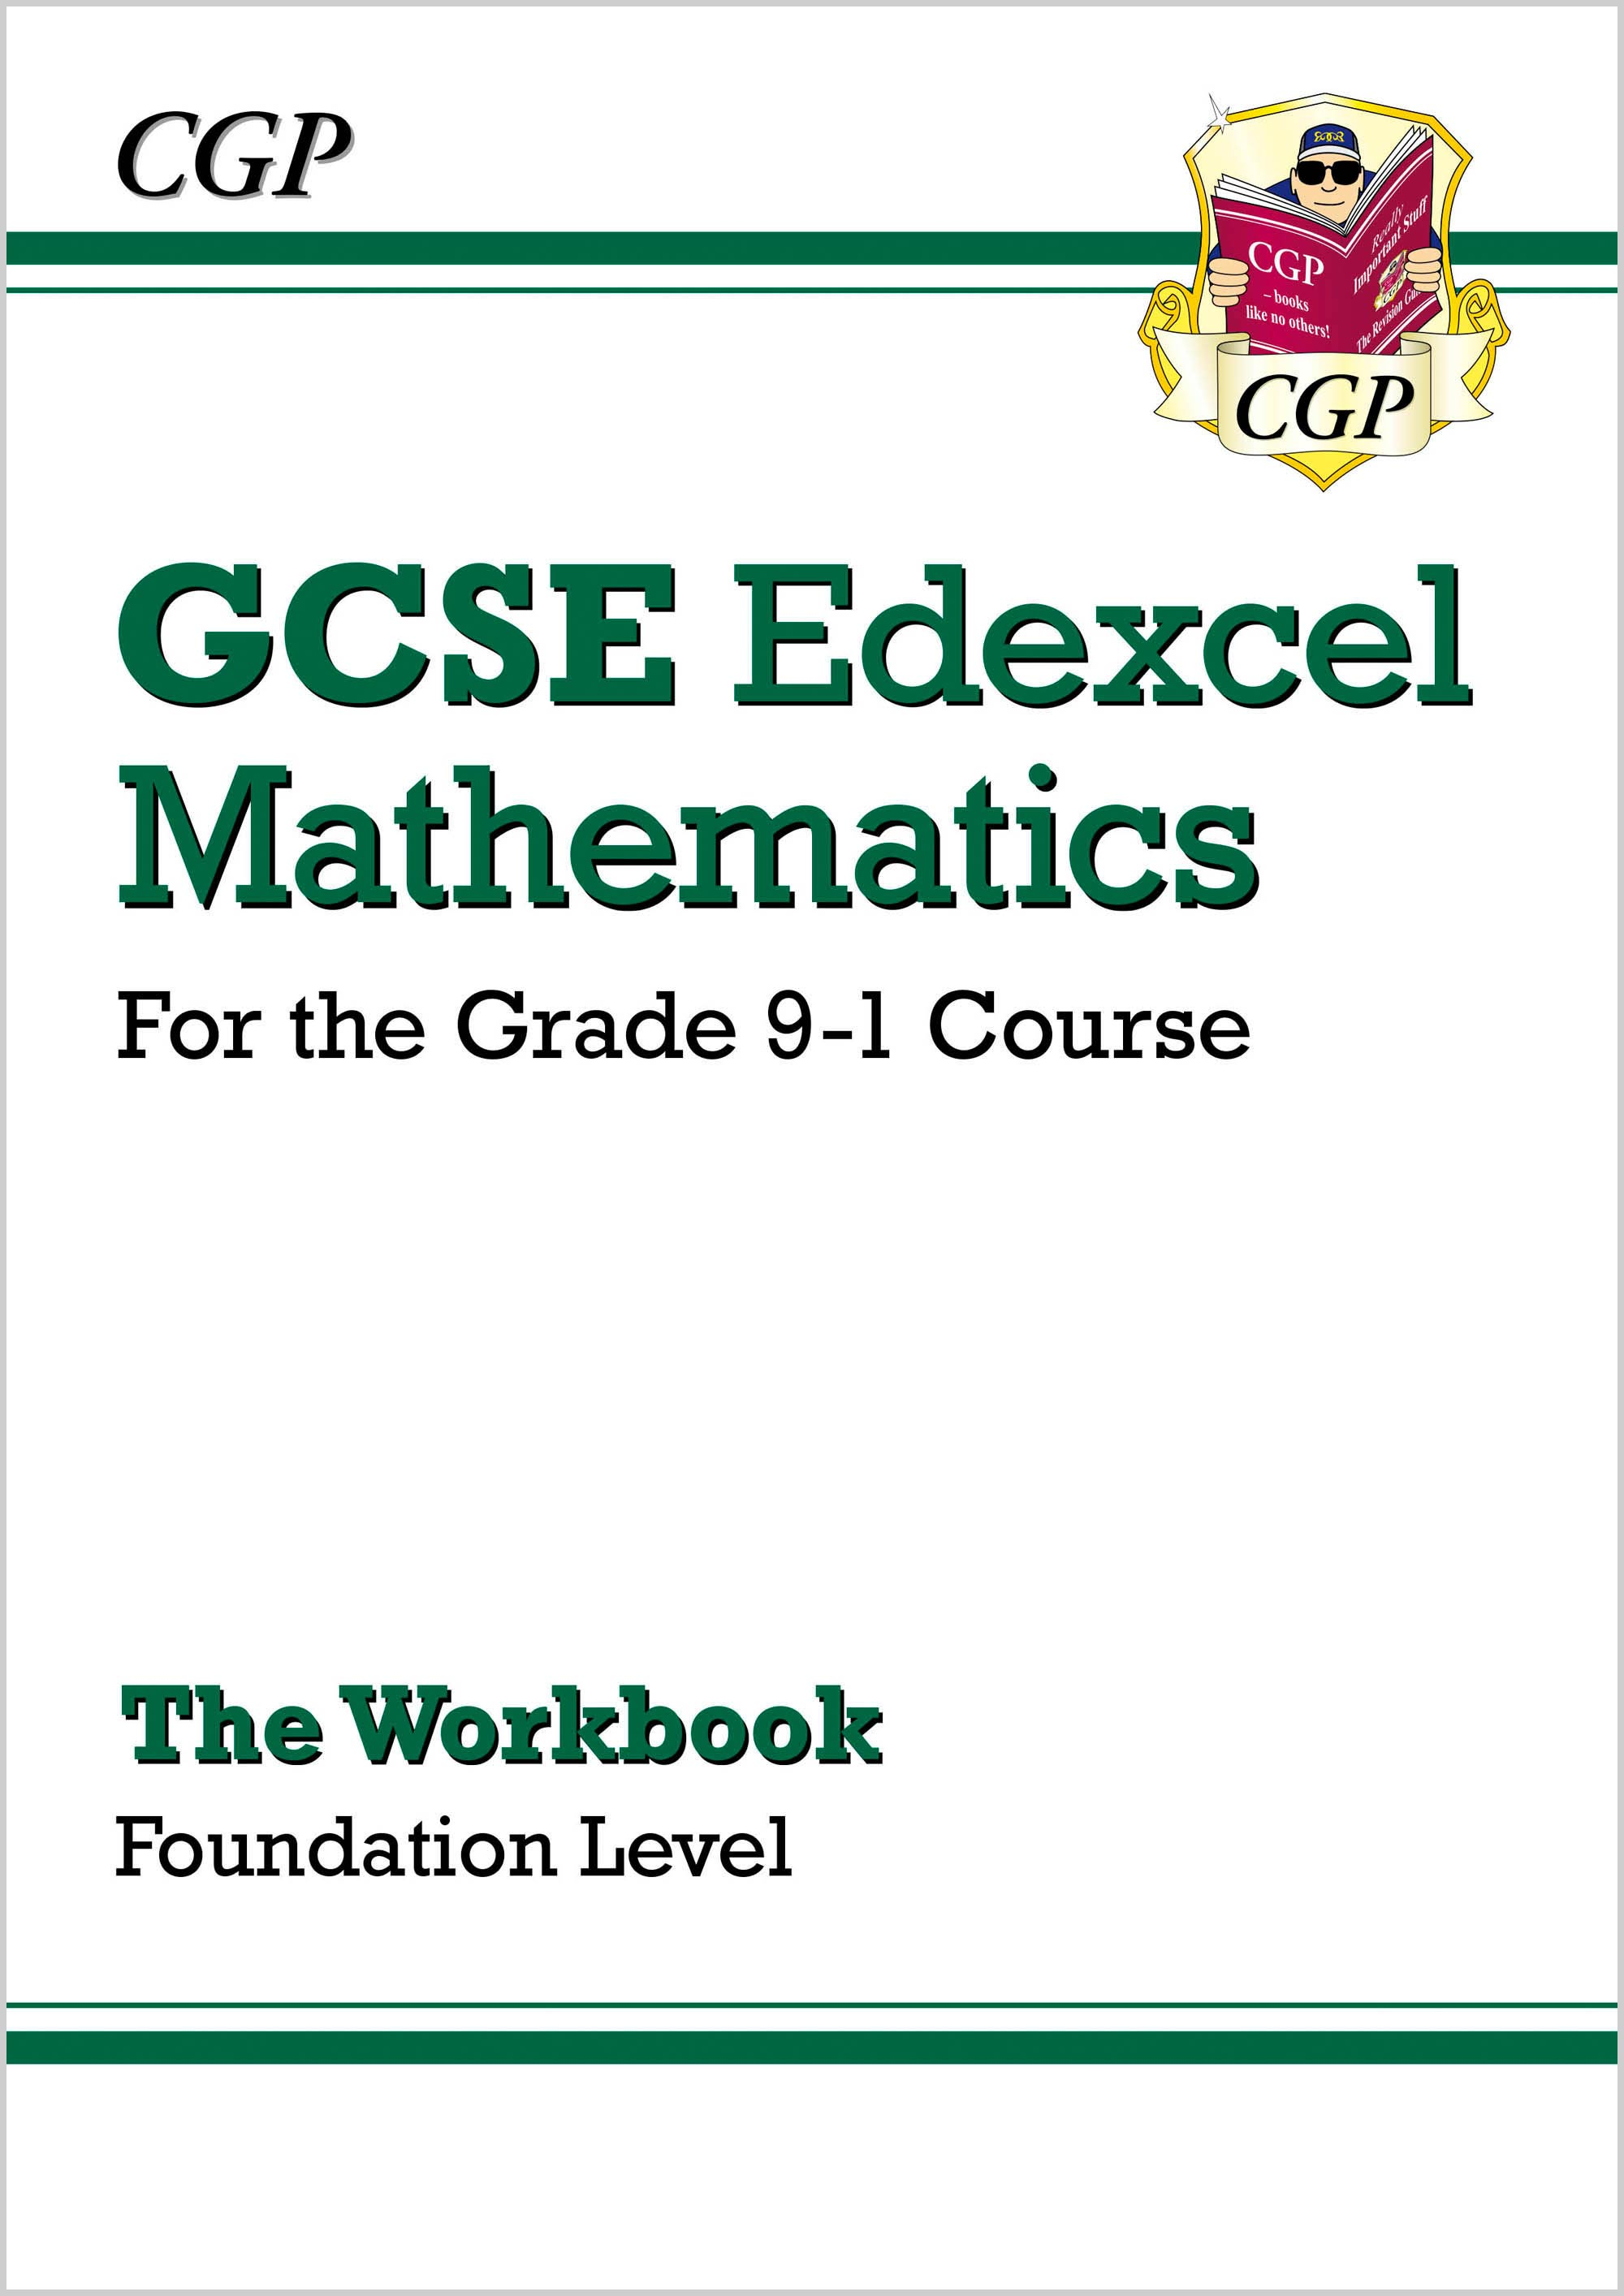 MXFW46DK - New GCSE Maths Edexcel Workbook: Foundation - for the Grade 9-1 Course